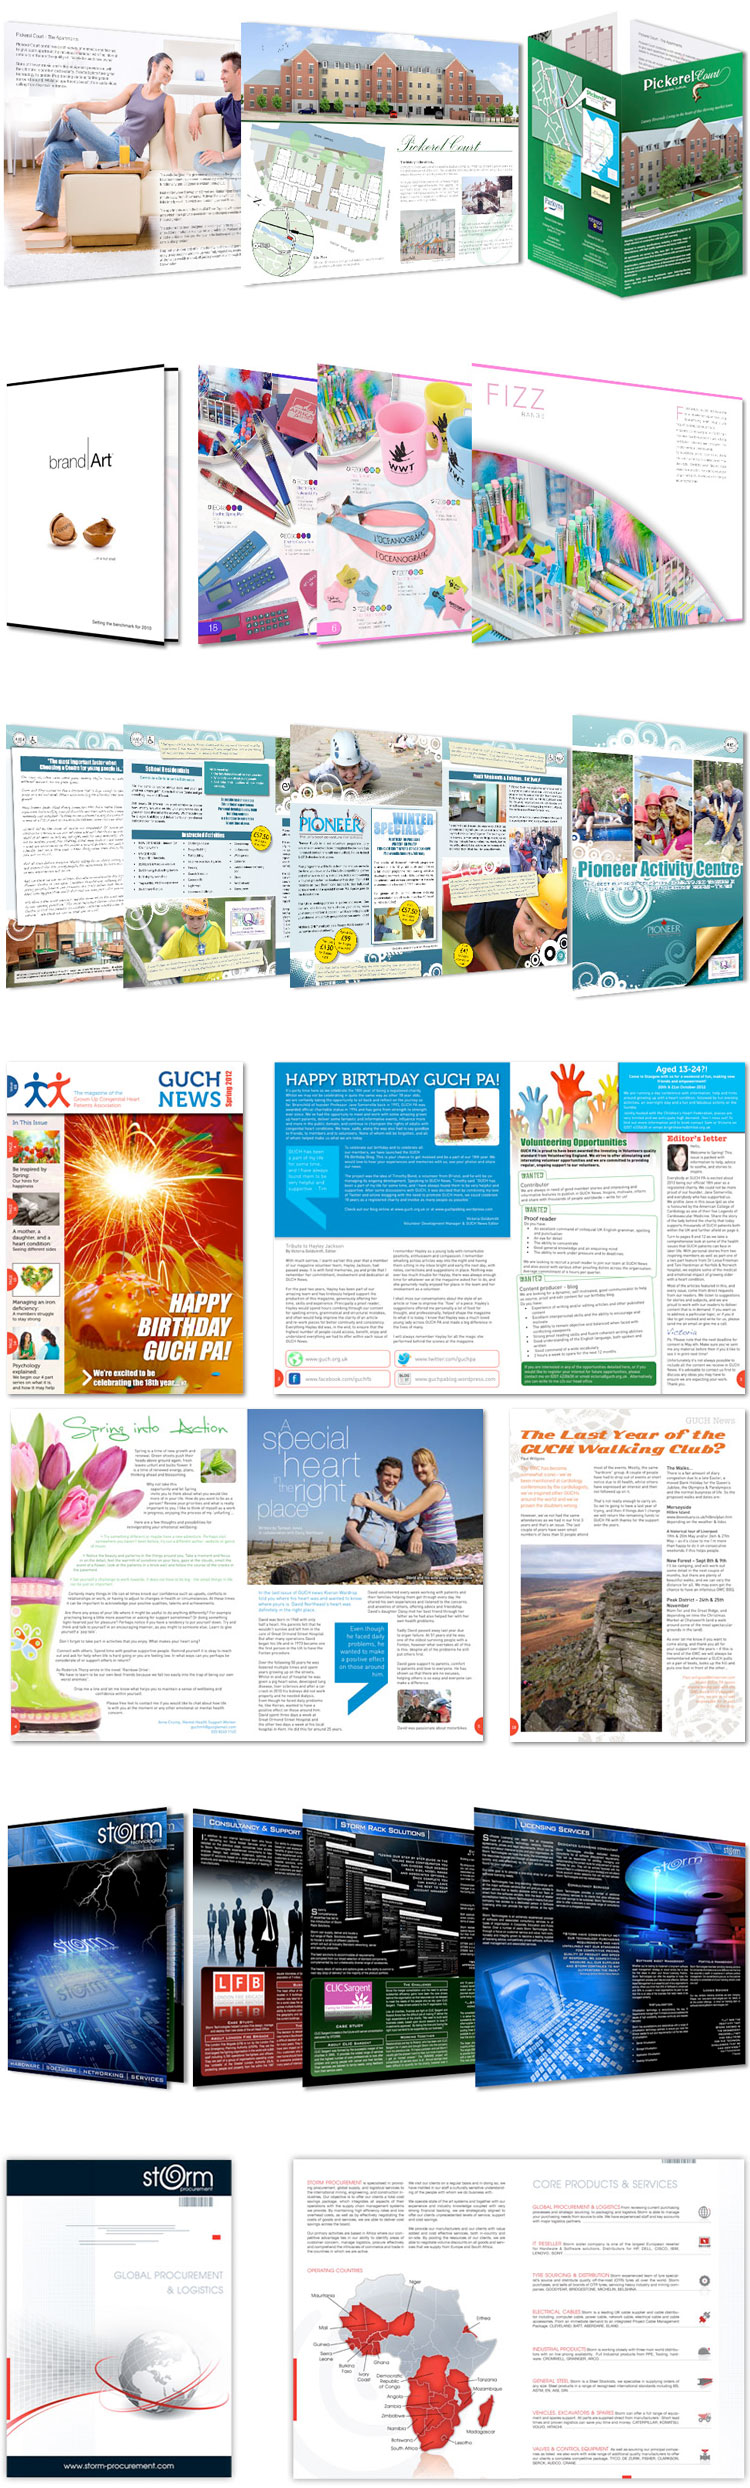 brochure design essex